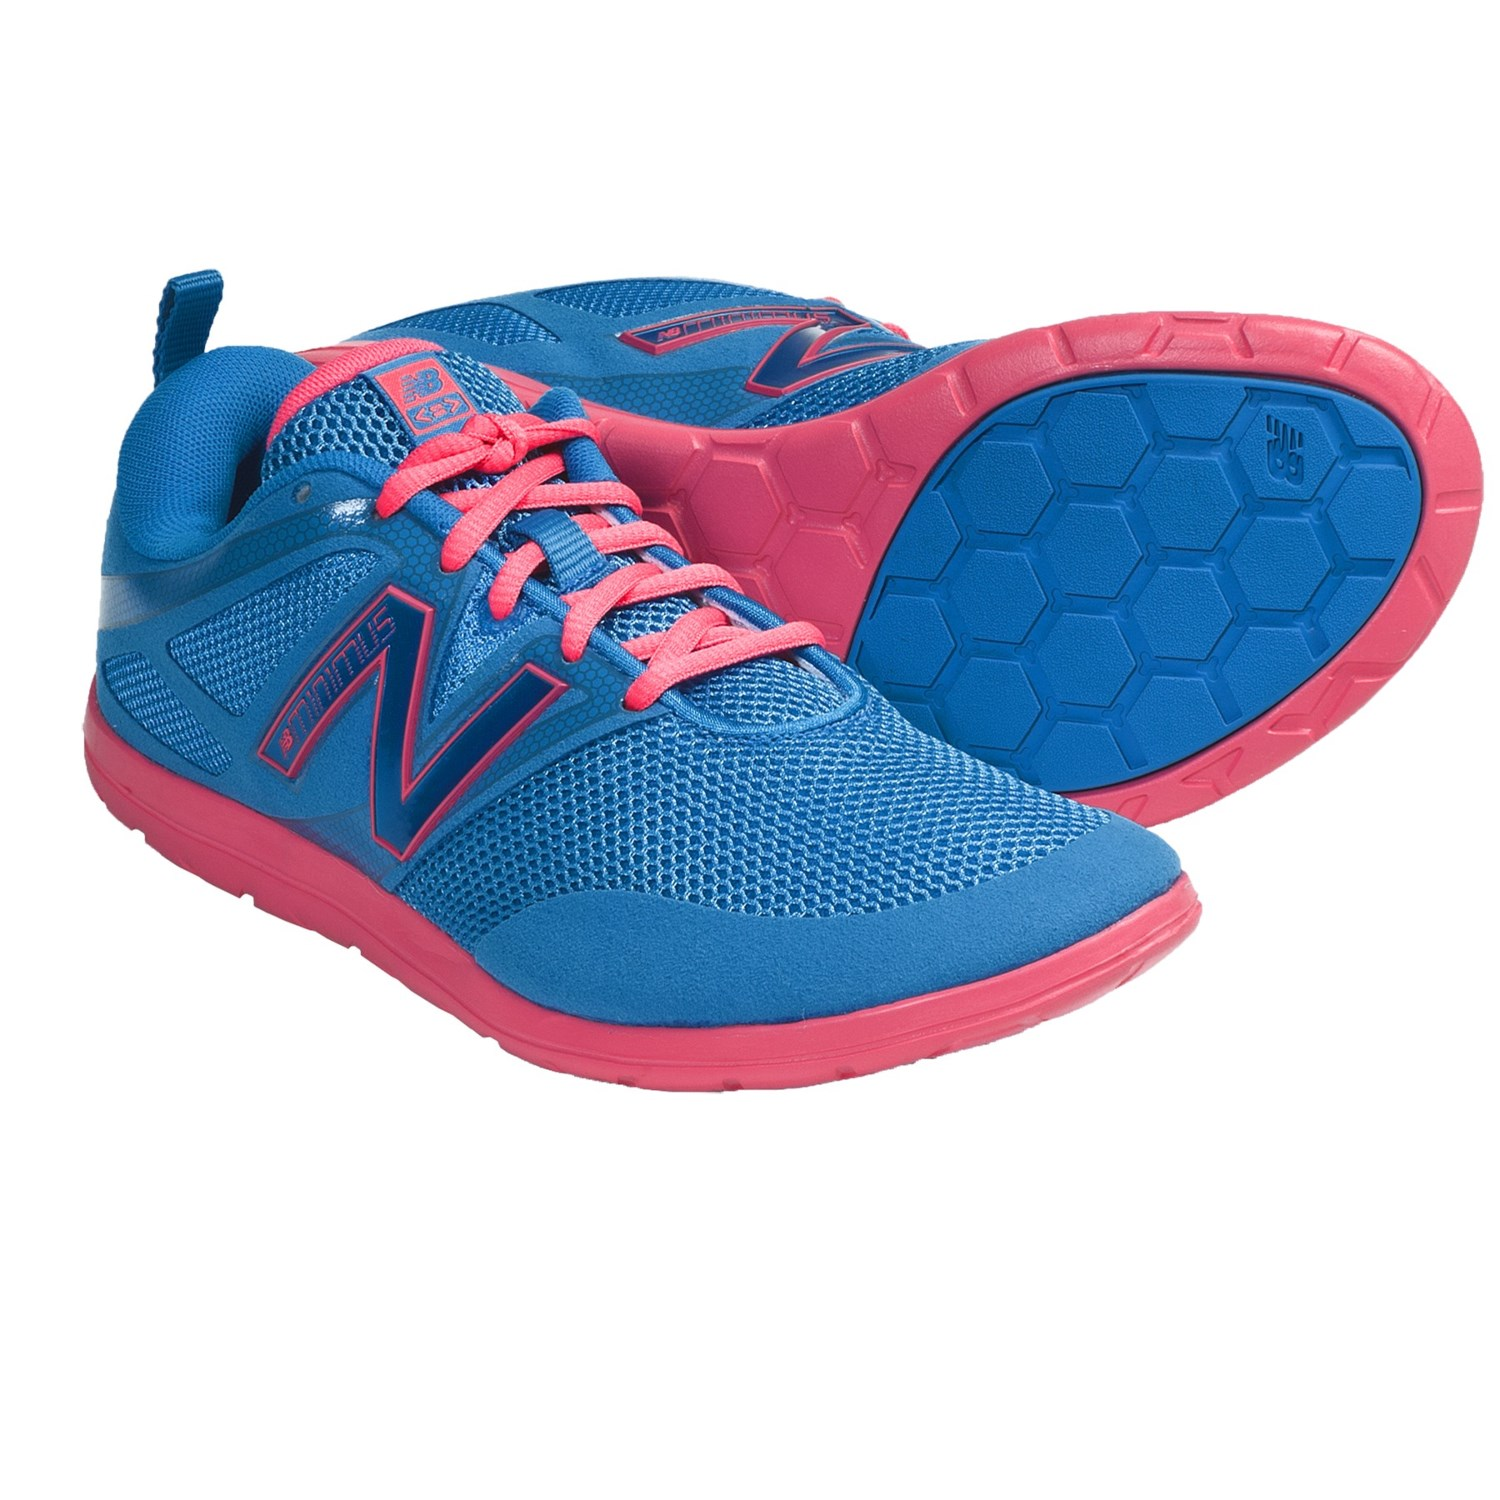 New Balance WT10 Minimus Trail Running Shoe - Women's